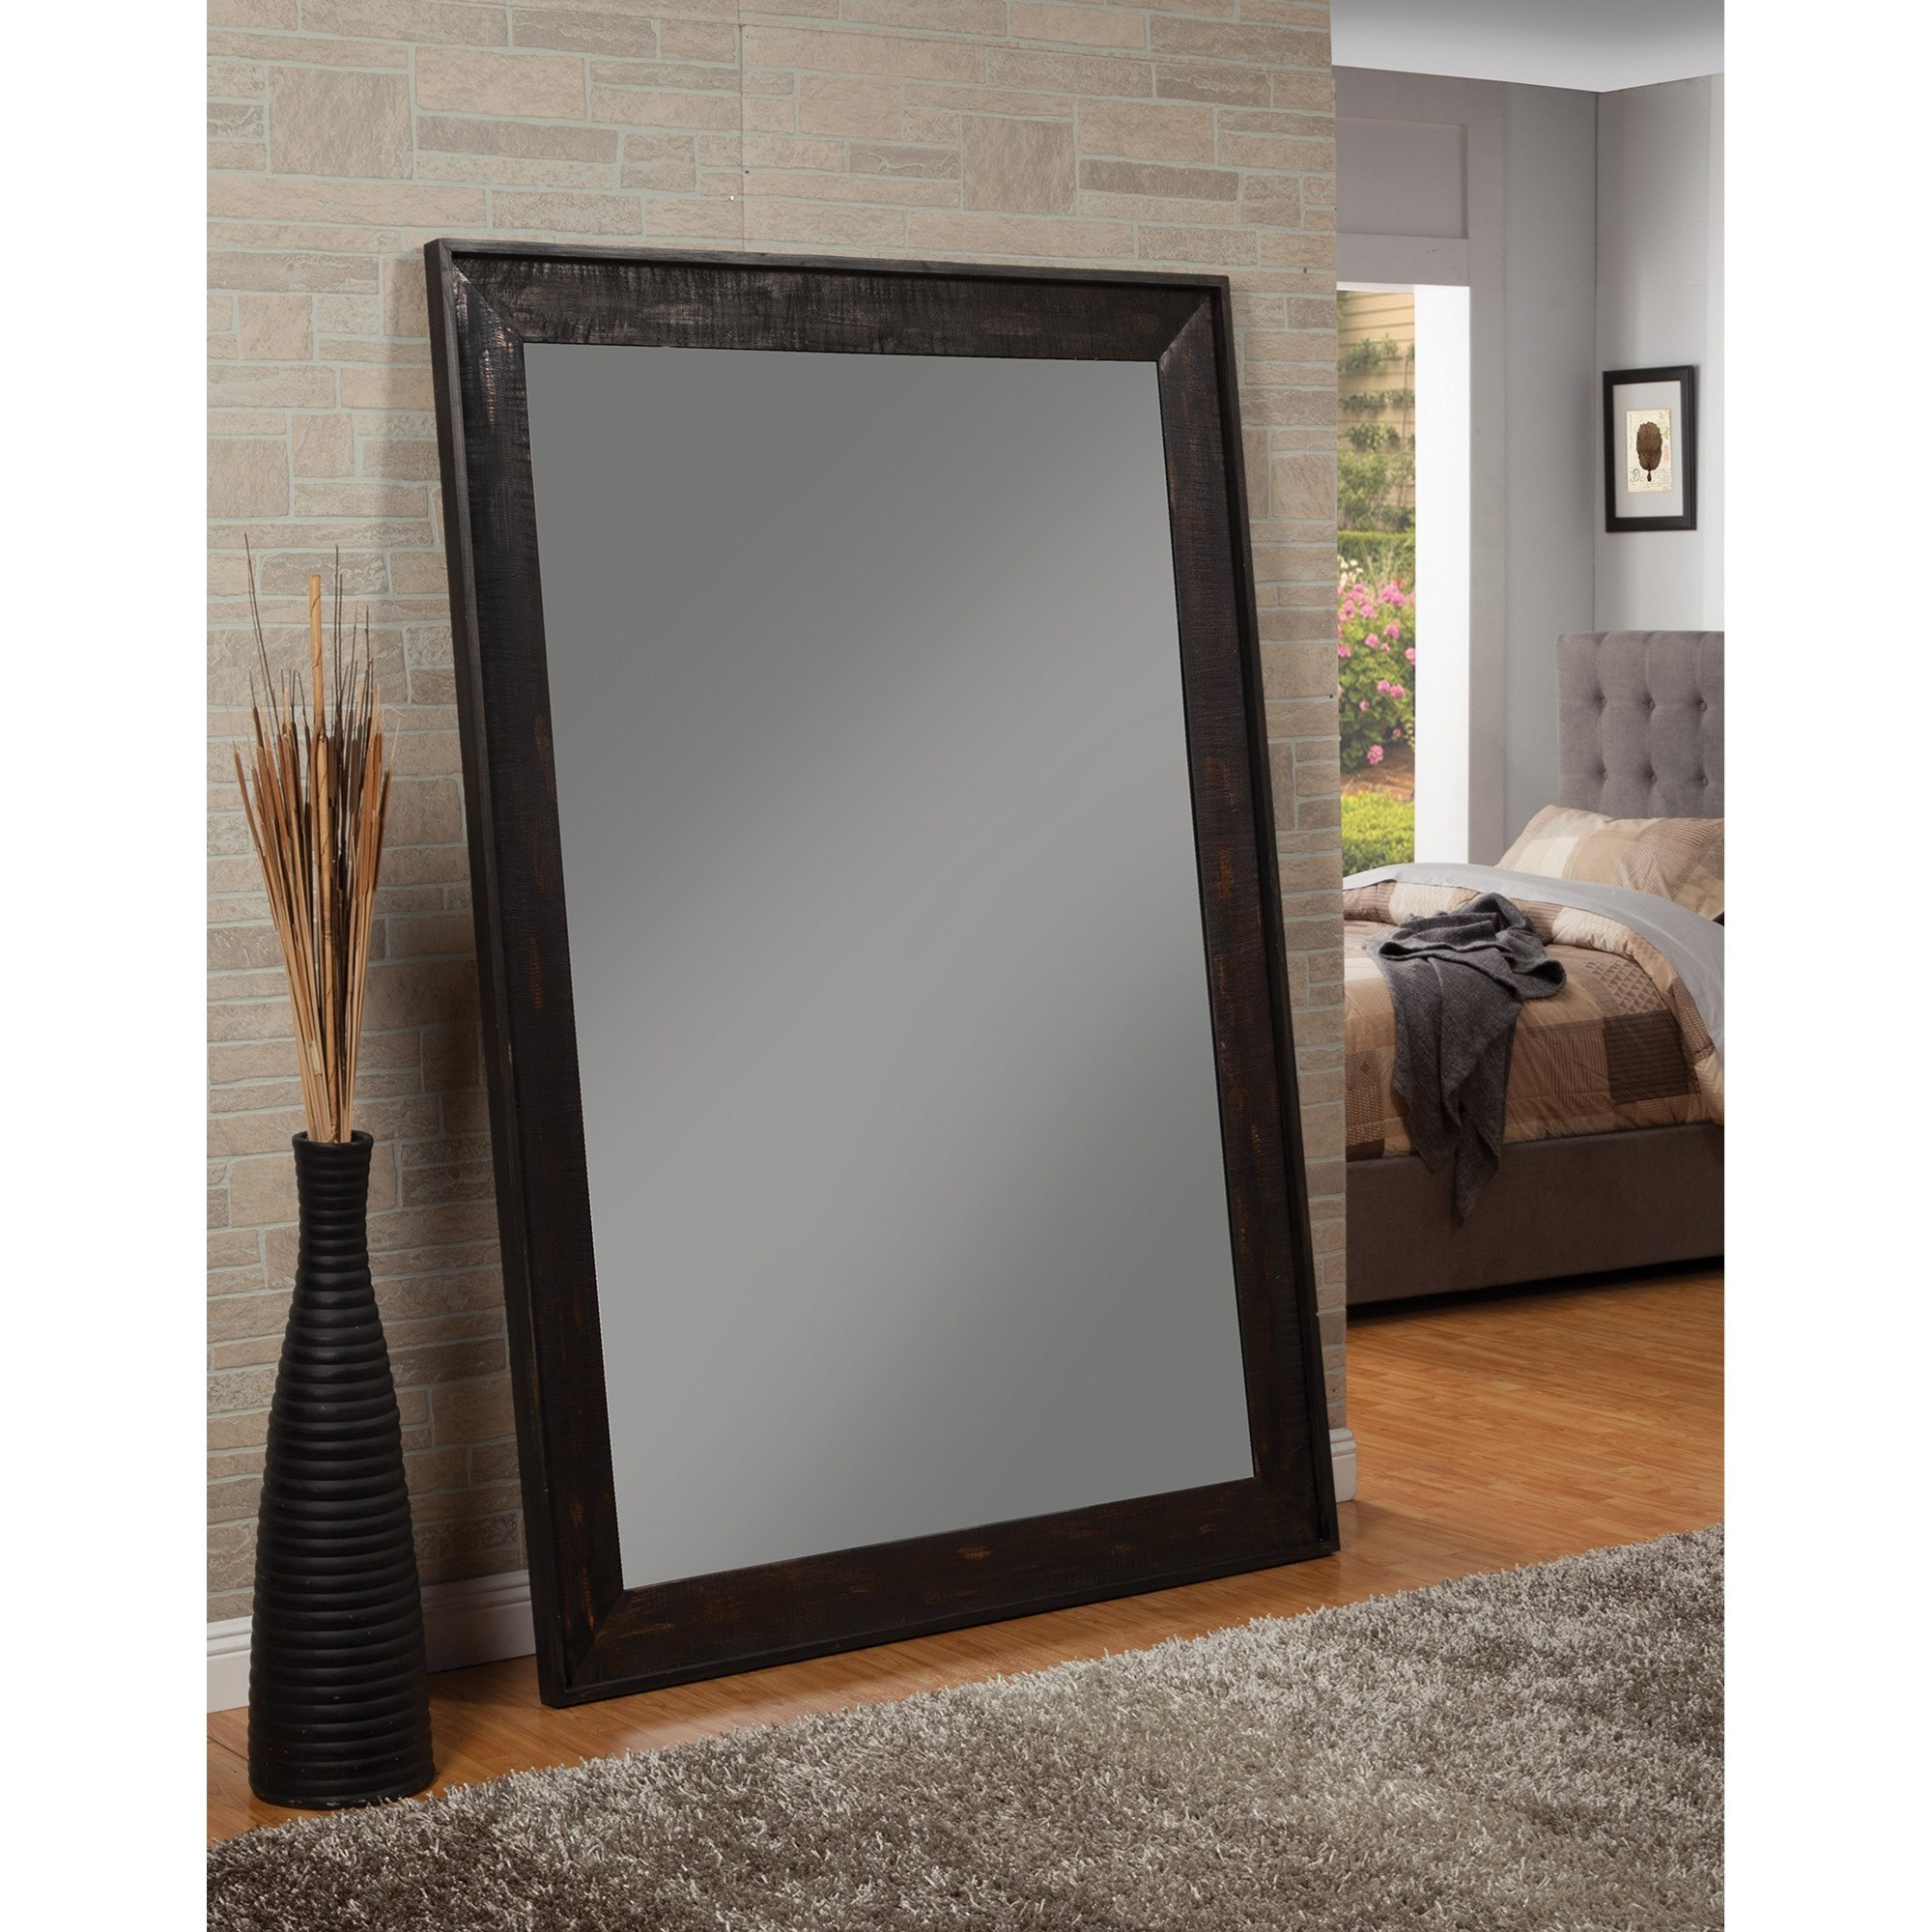 Coaster Accent Mirrors Mirror - Item Number: 902768